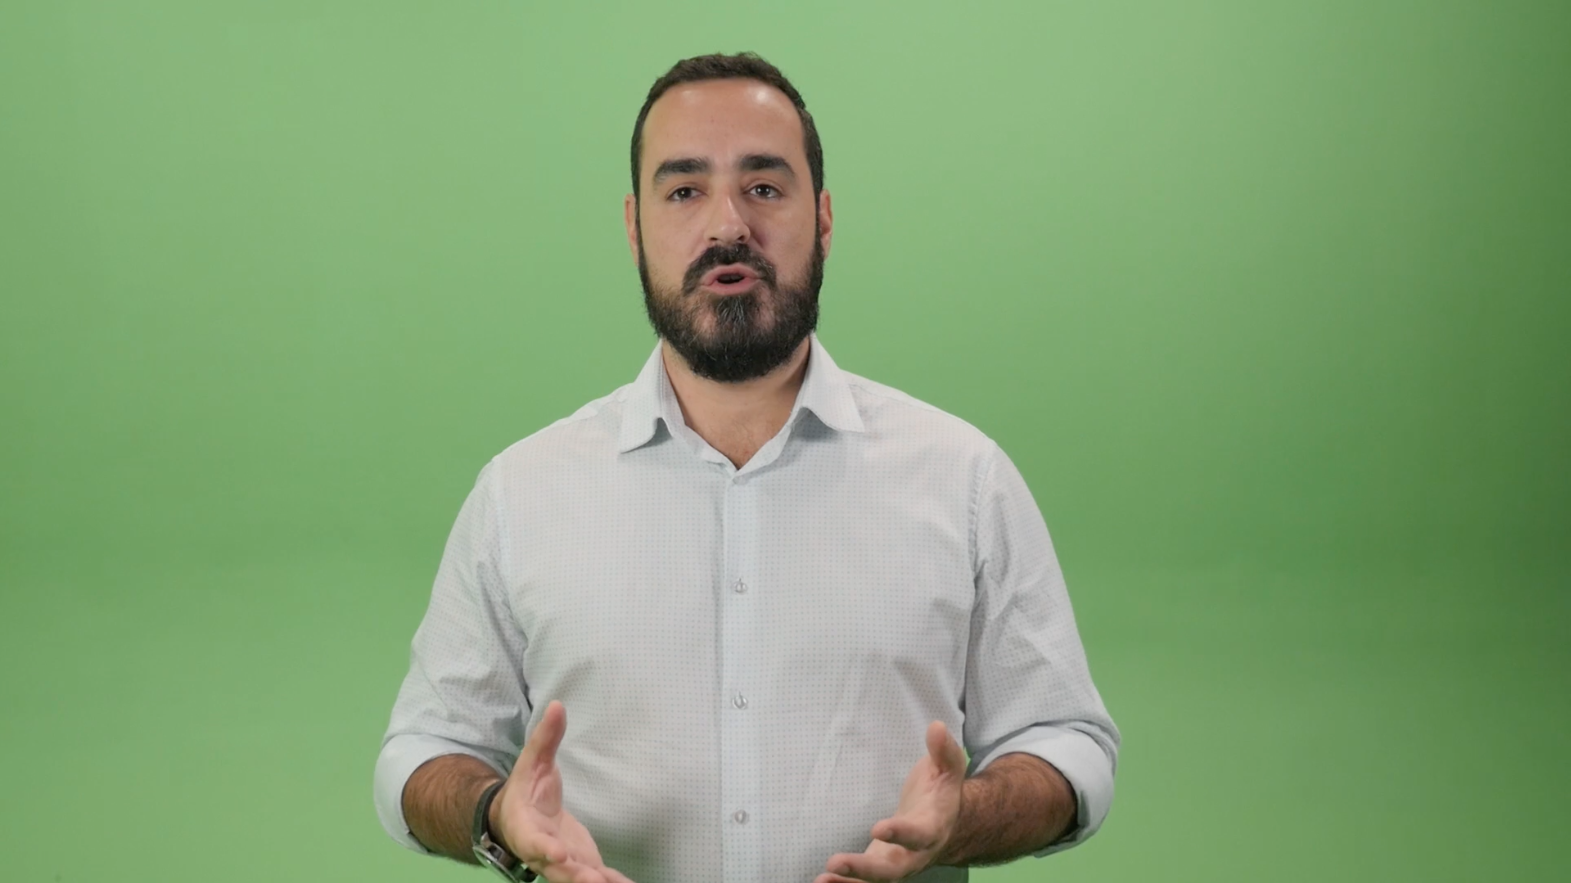 Green Screening 1 | On Point Video Productions